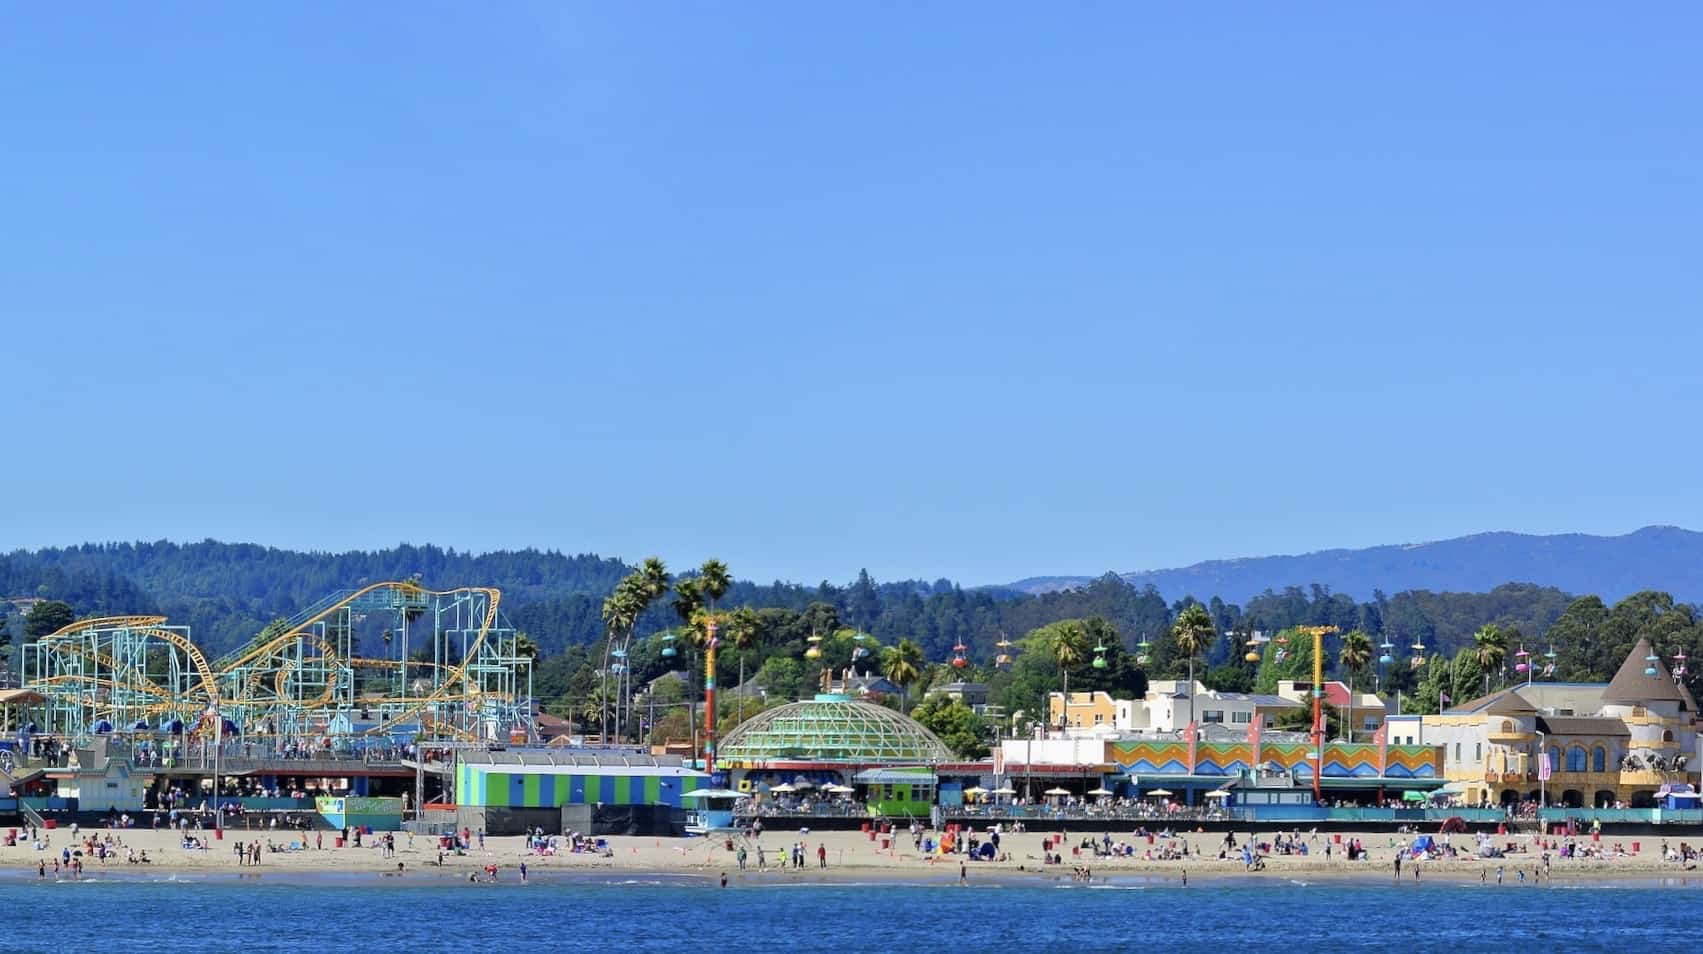 Bay Area Weekend Getaways - Santa Cruz